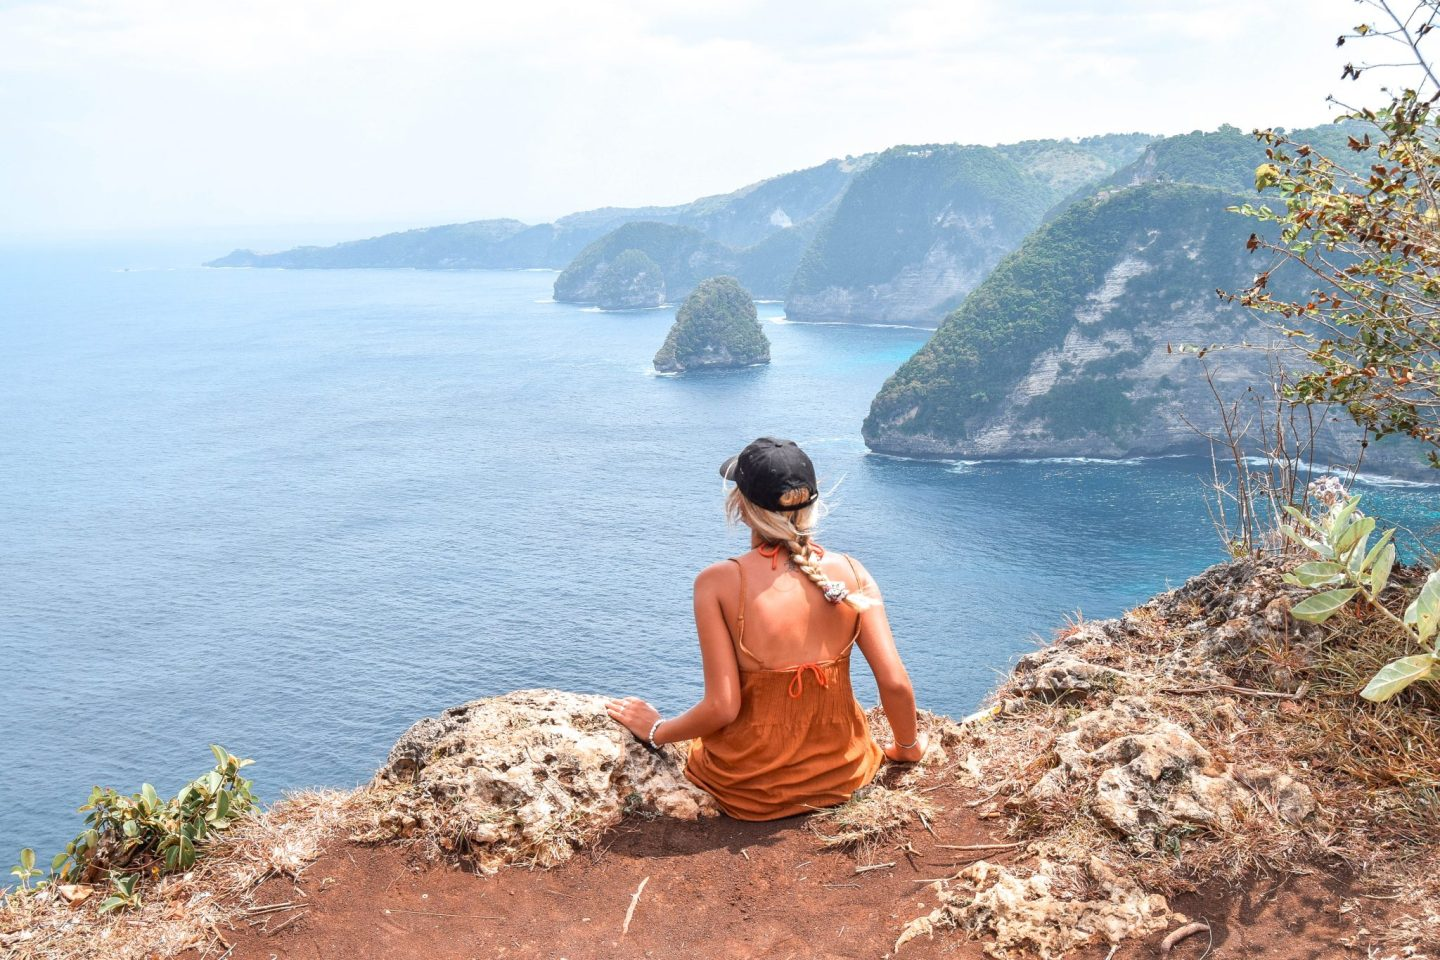 Wanderers & Warriors - Charlie & Lauren UK Travel Couple - Banah Cliff Point Nusa Penida Bali - viewpoint nusa penida viewpoint - cliff nusa penida cliff